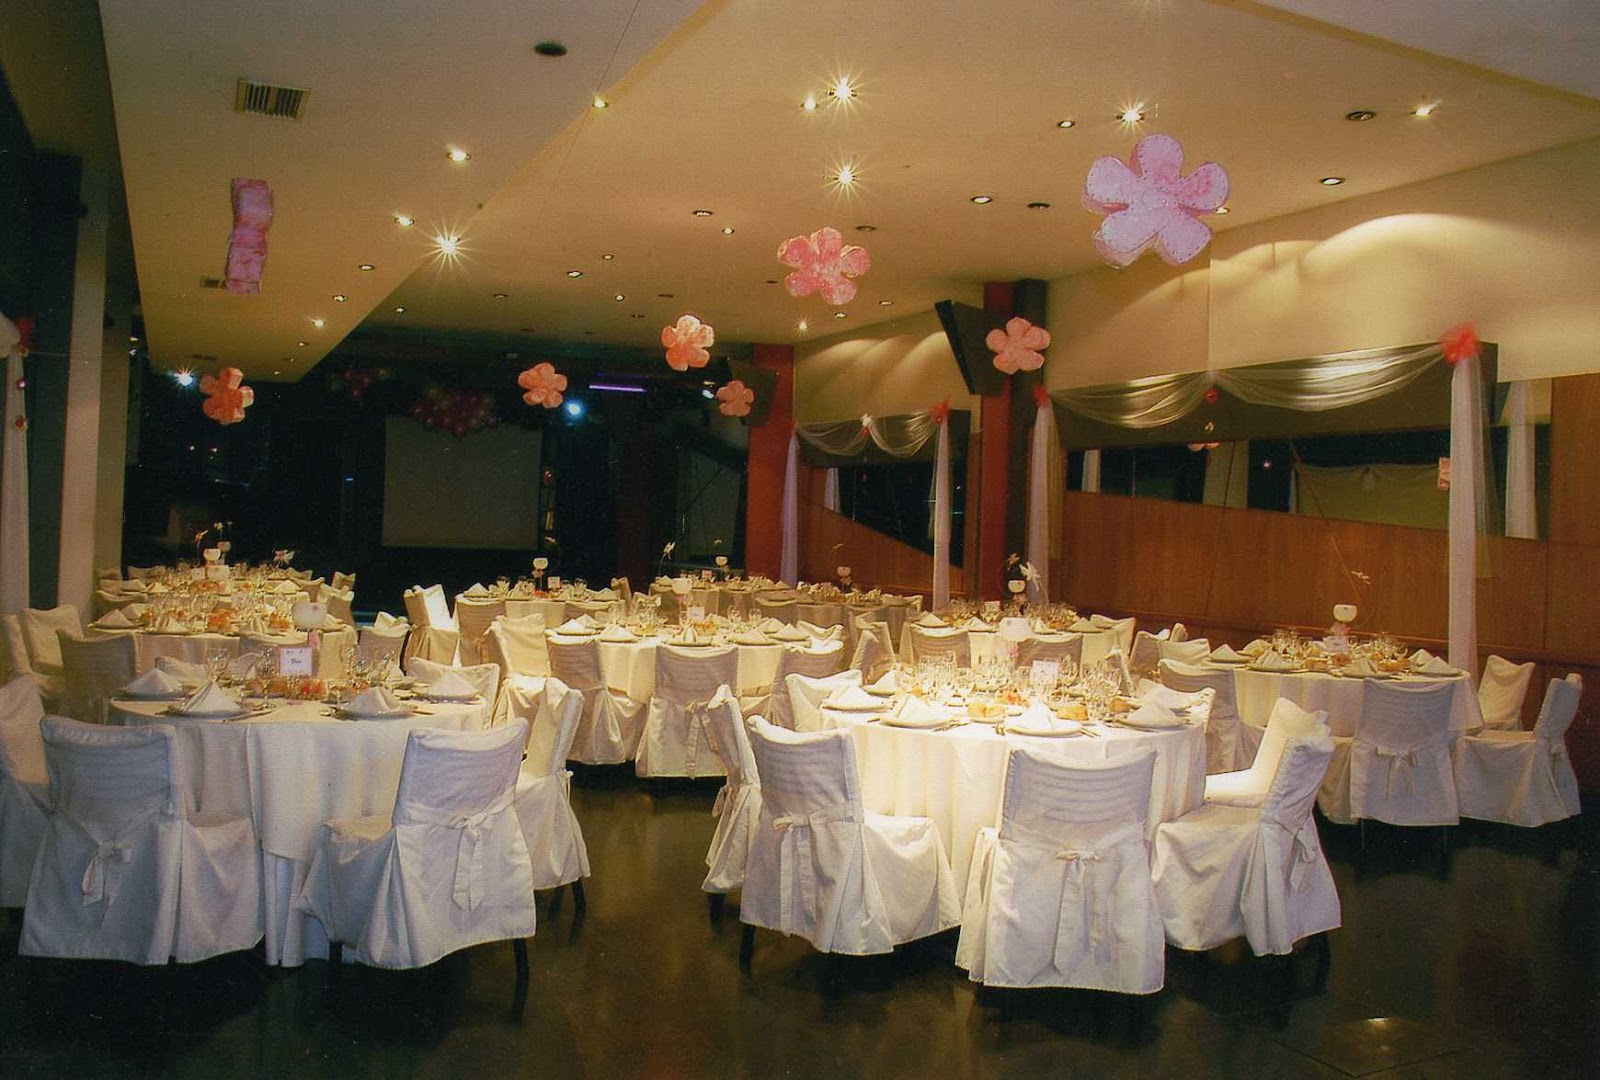 Decorar Salon Boda Faar Eventos Decoraciones